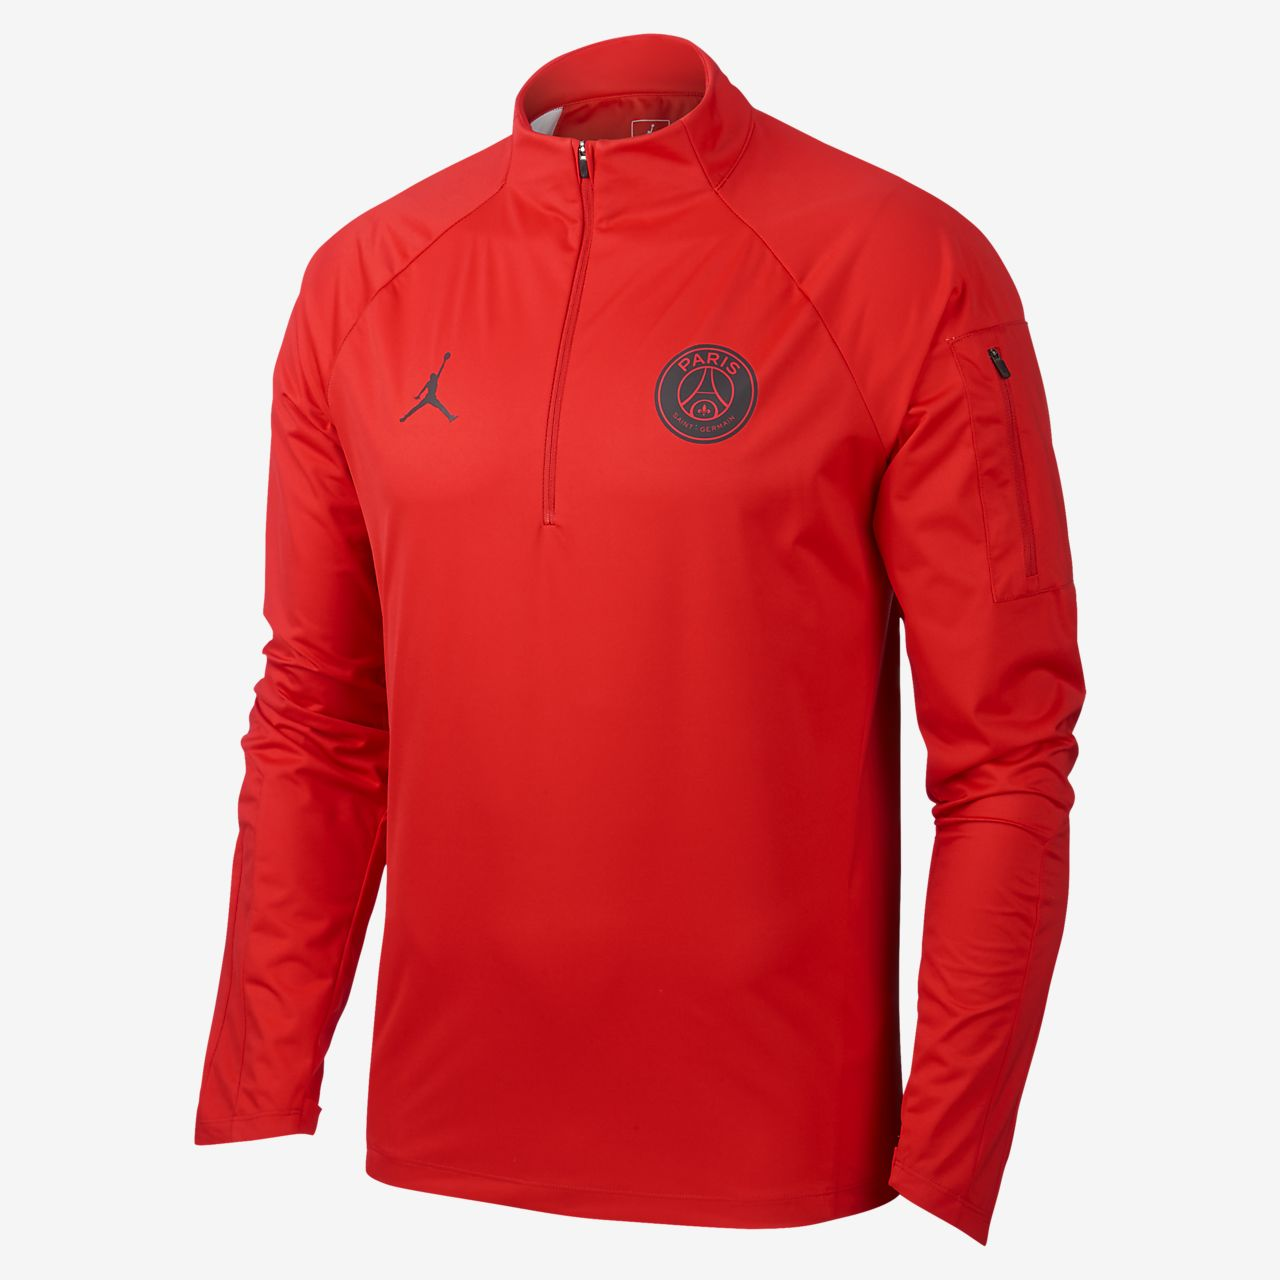 edd5994b3aaf1 Top para fútbol Paris Saint-Germain Shield Squad Drill para hombre ...